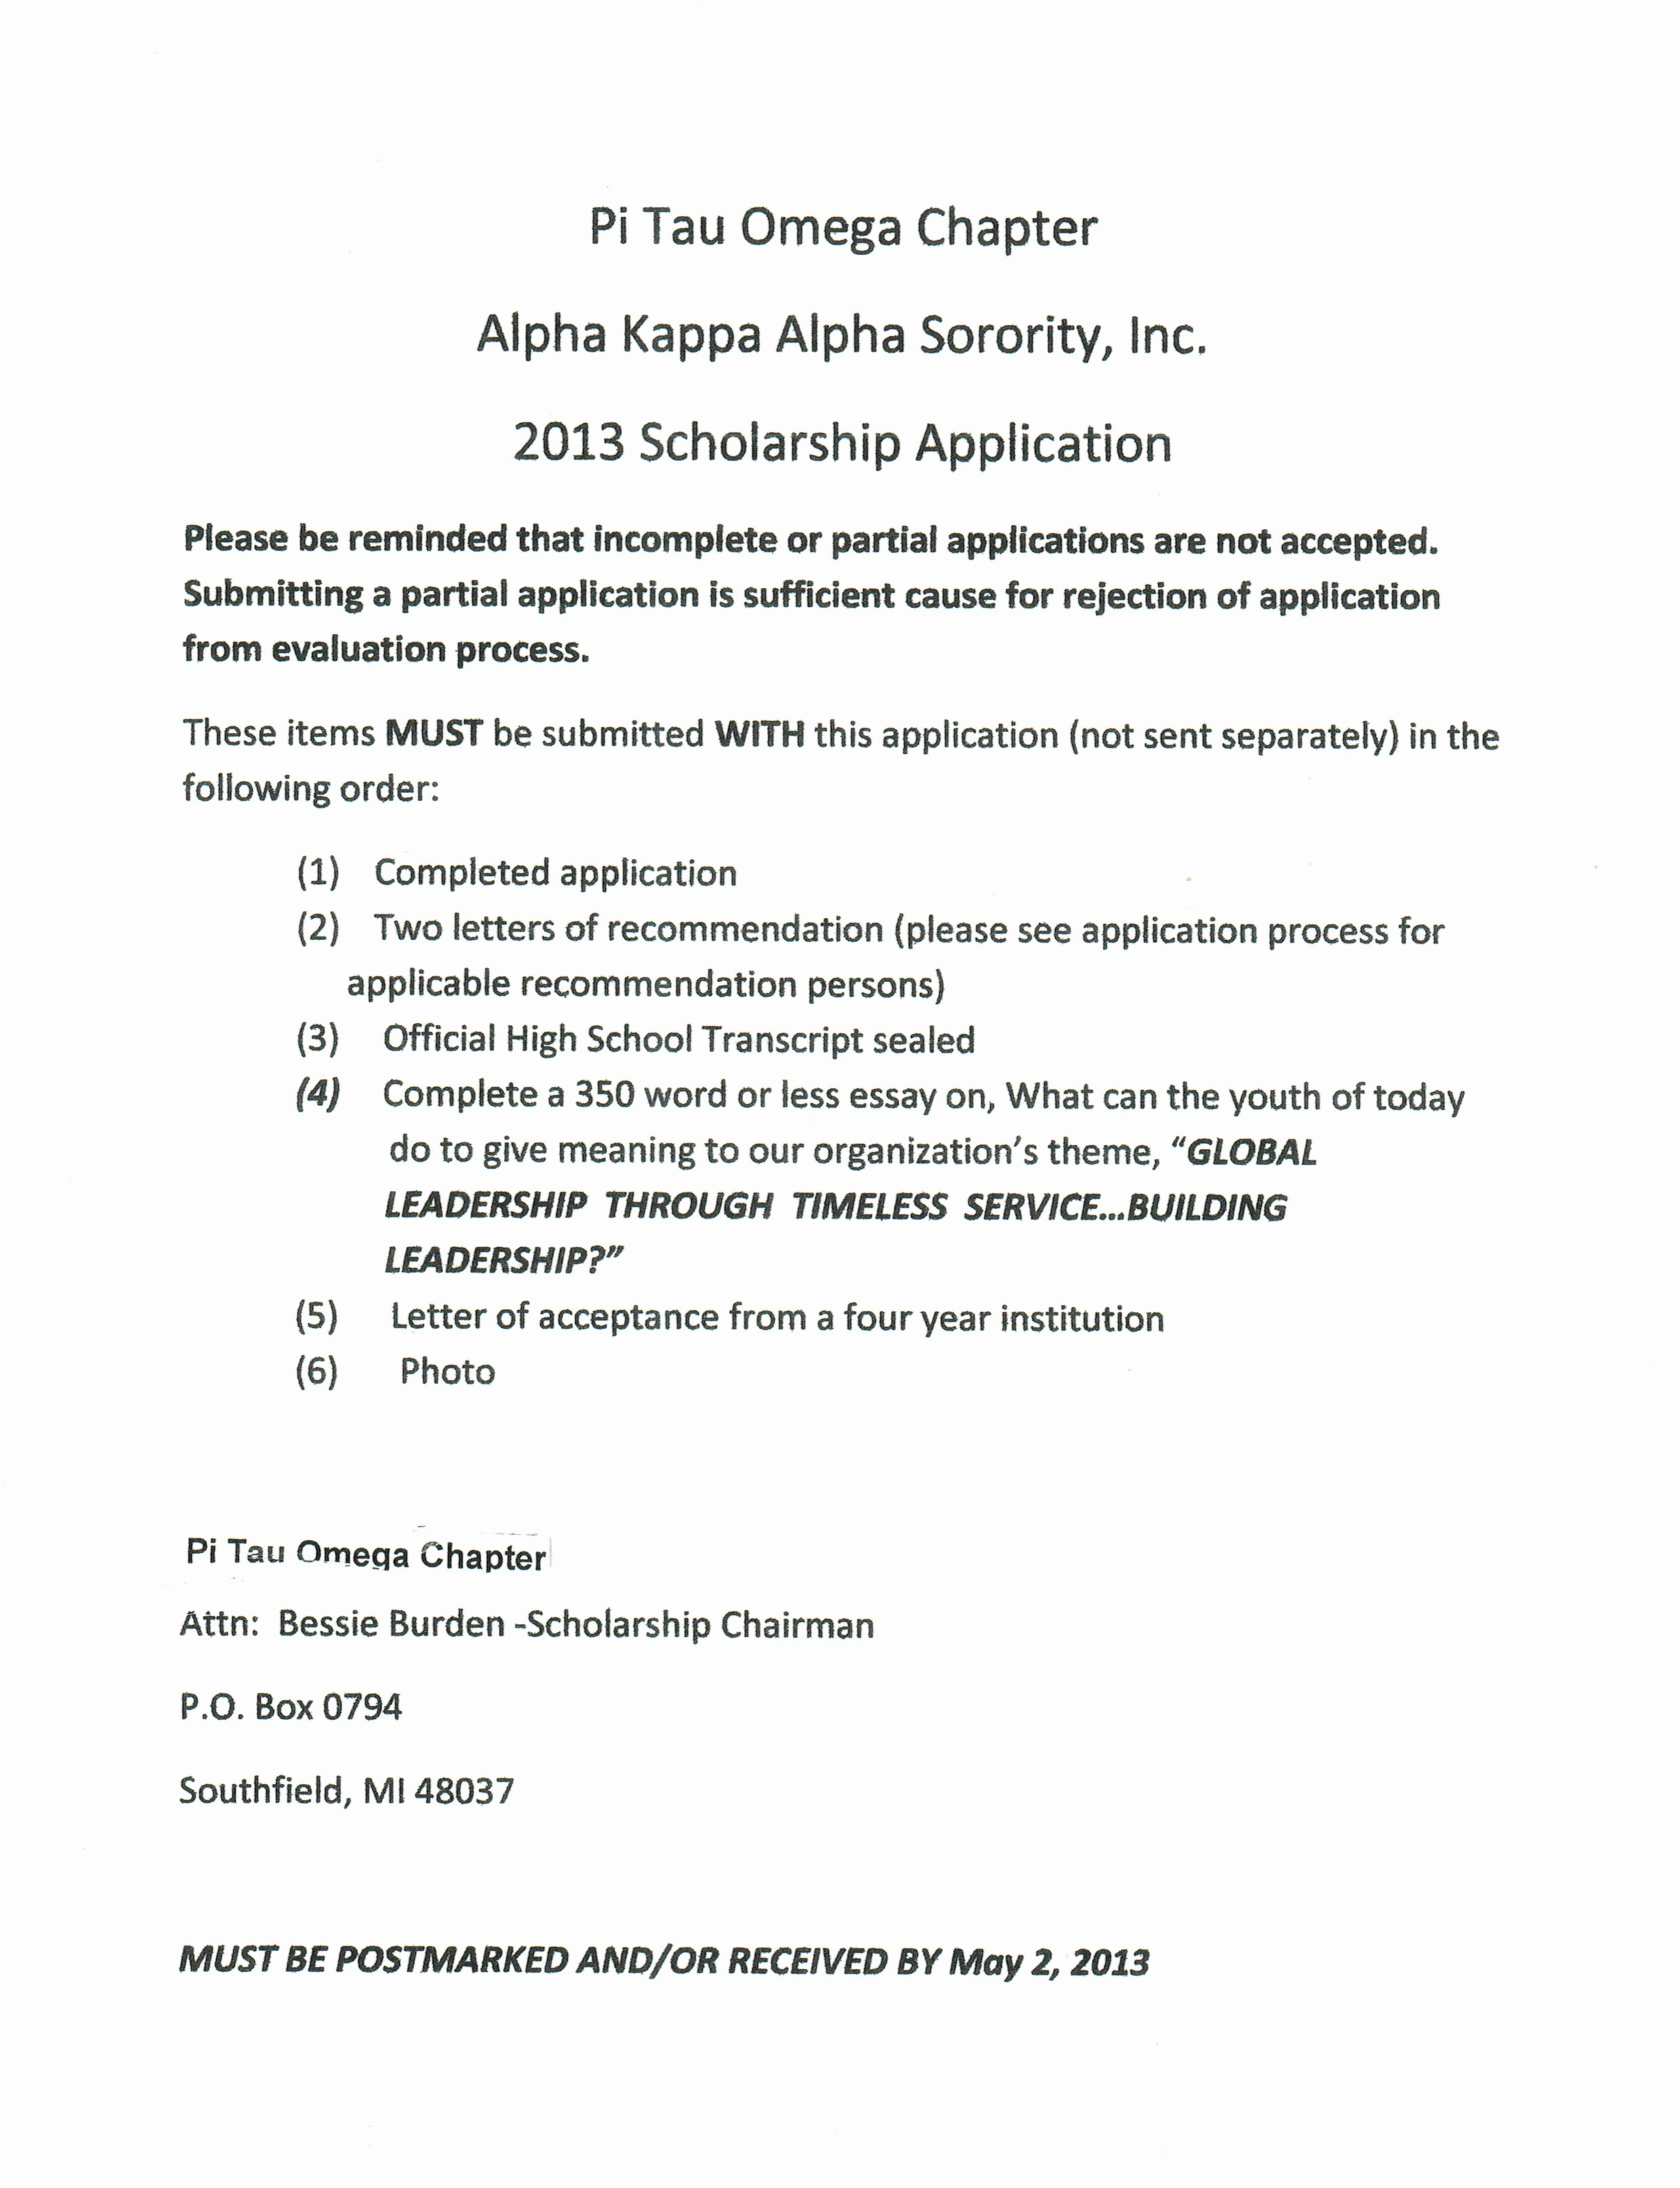 Letter Of Recommendation for sorority New Pi Tau Omega Chapter Of Alpha Kappa Alpha sorority Inc